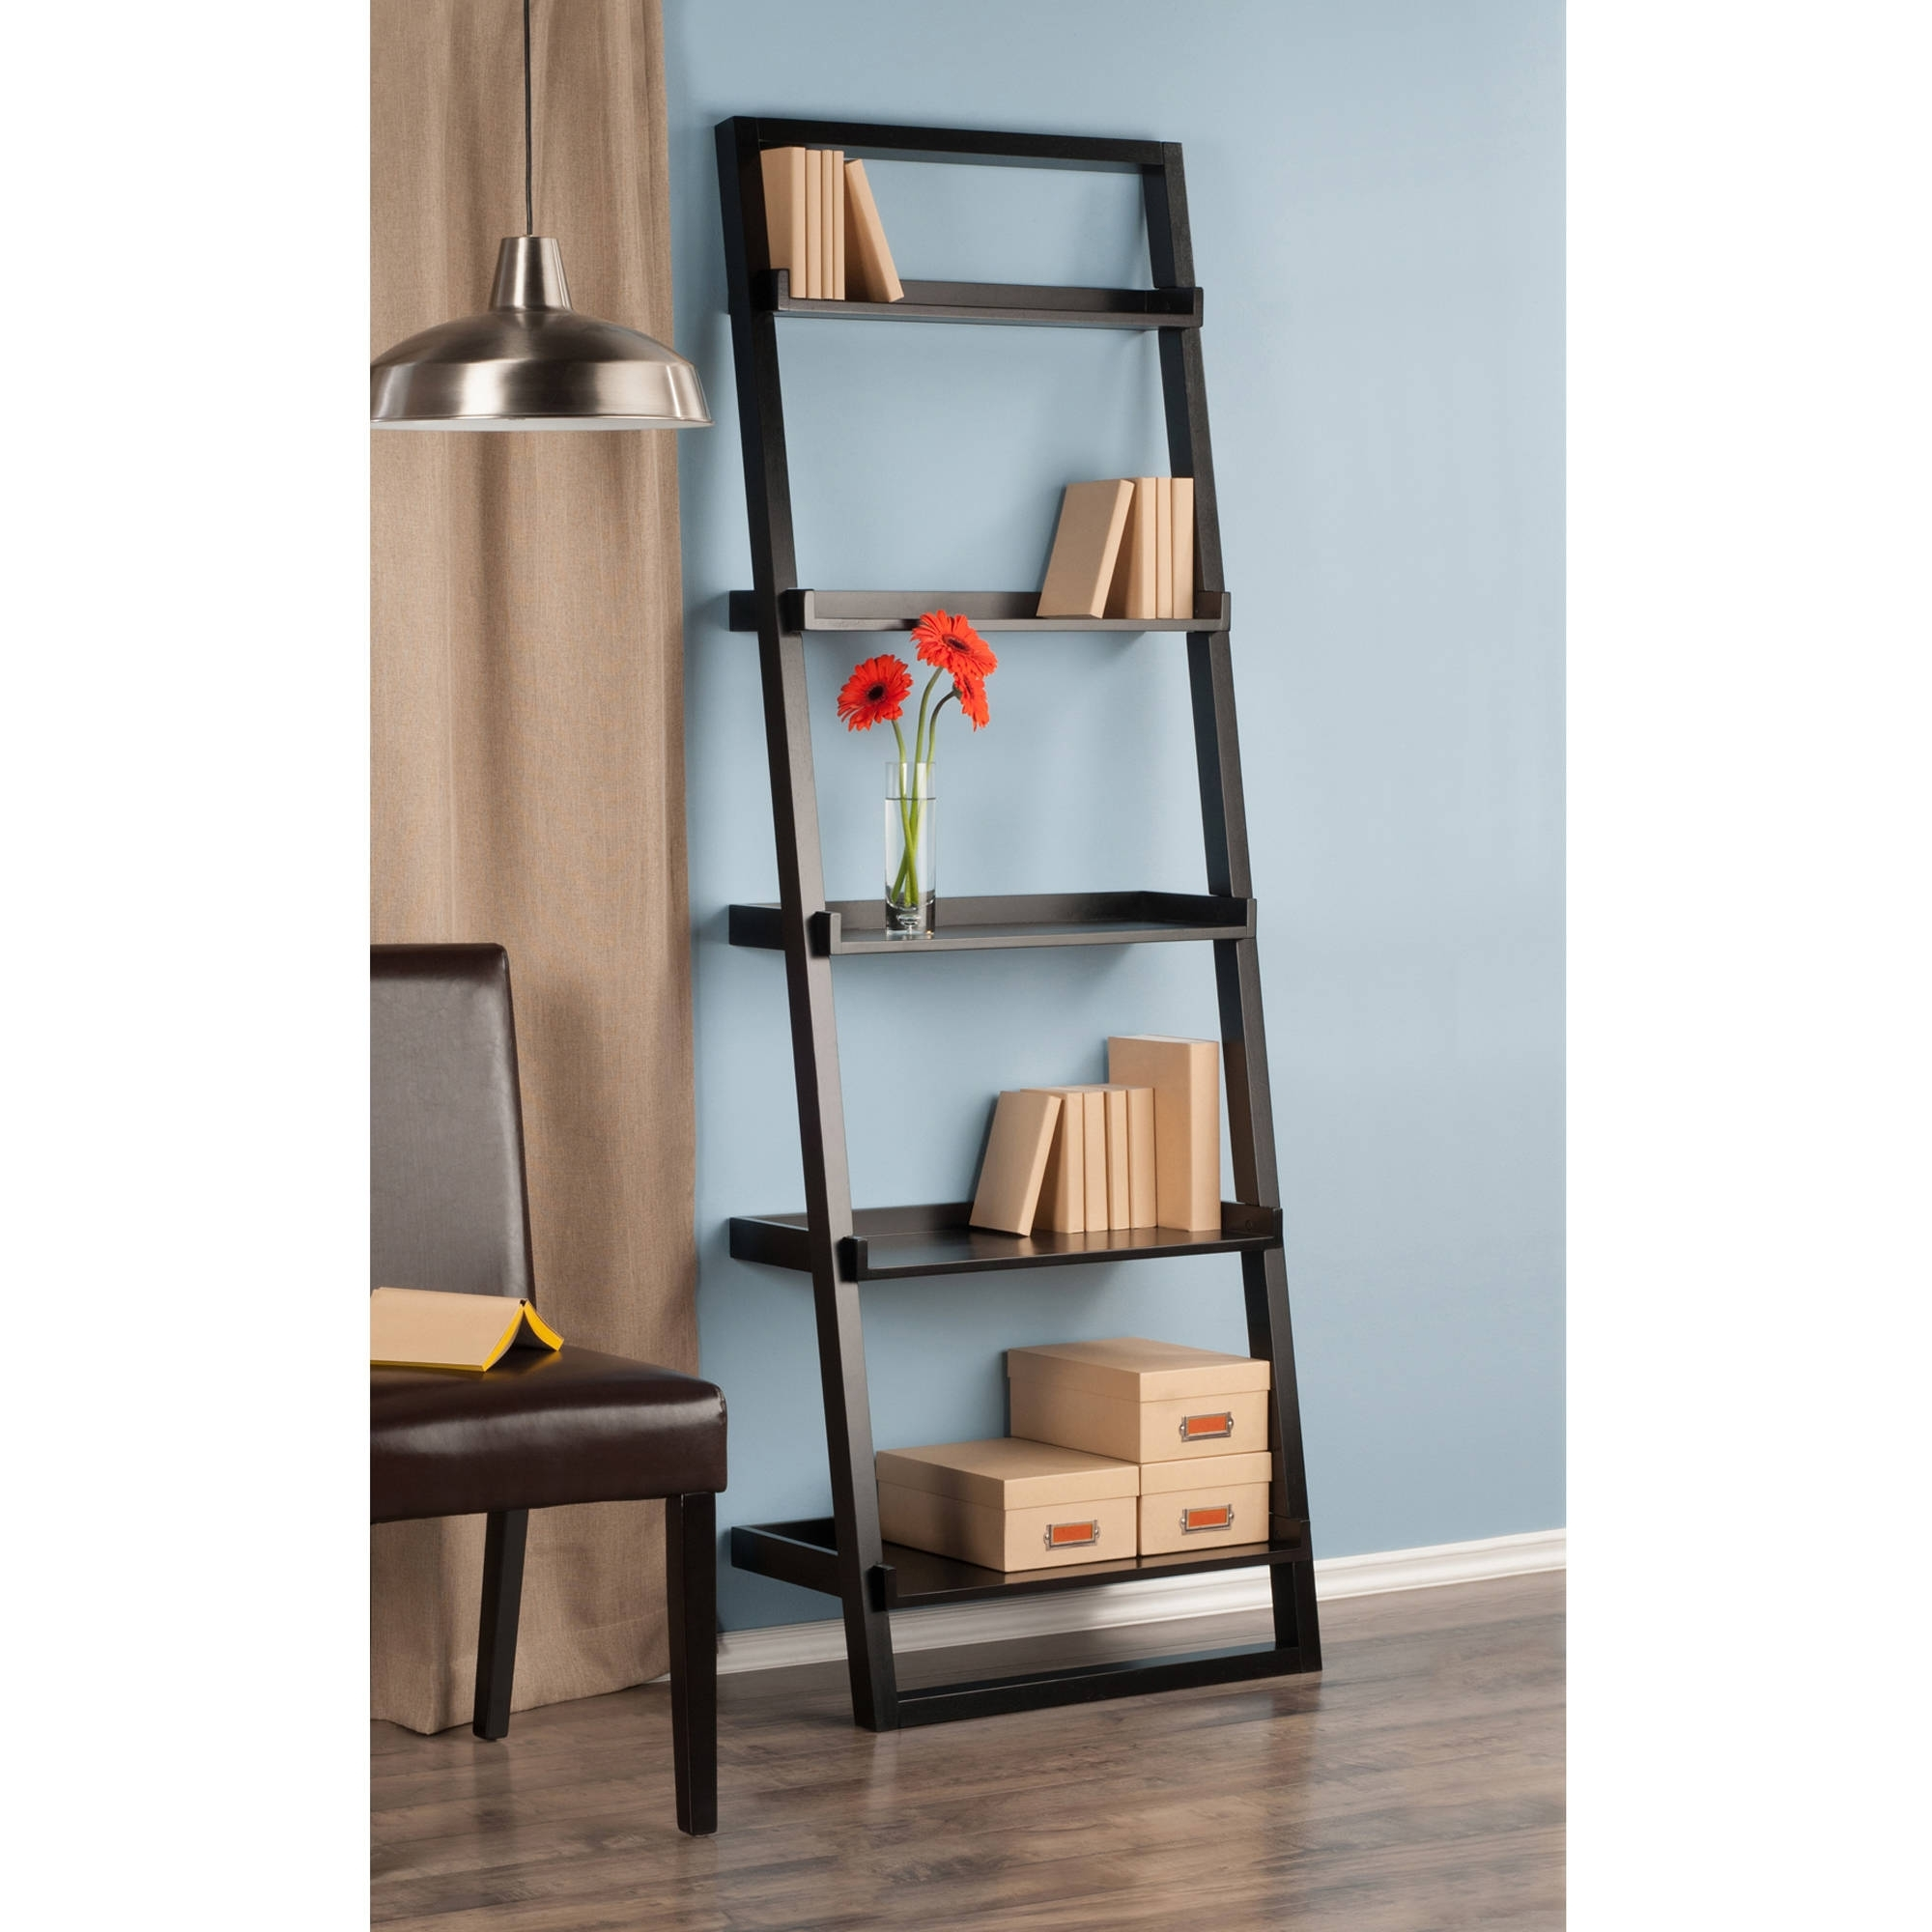 Black Bookcases Walmart Pertaining To Recent Leaning Wall 5 Shelf Bookcase, Black – Walmart (View 8 of 15)